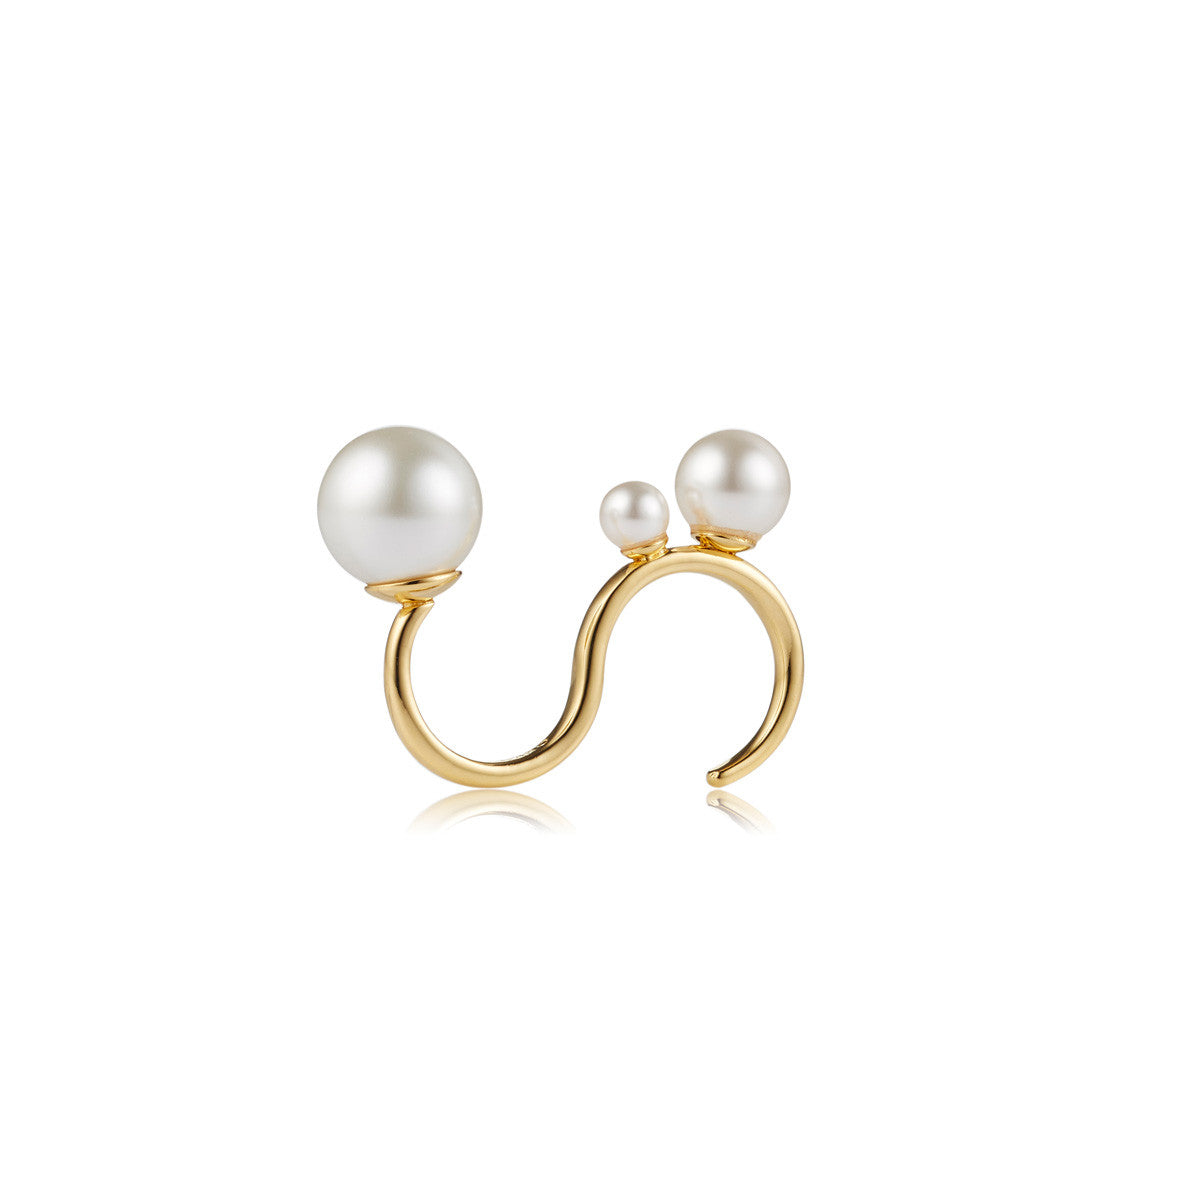 Solid brass, 18K gold plated Astrum ring with a trio of Swarovski® pearls